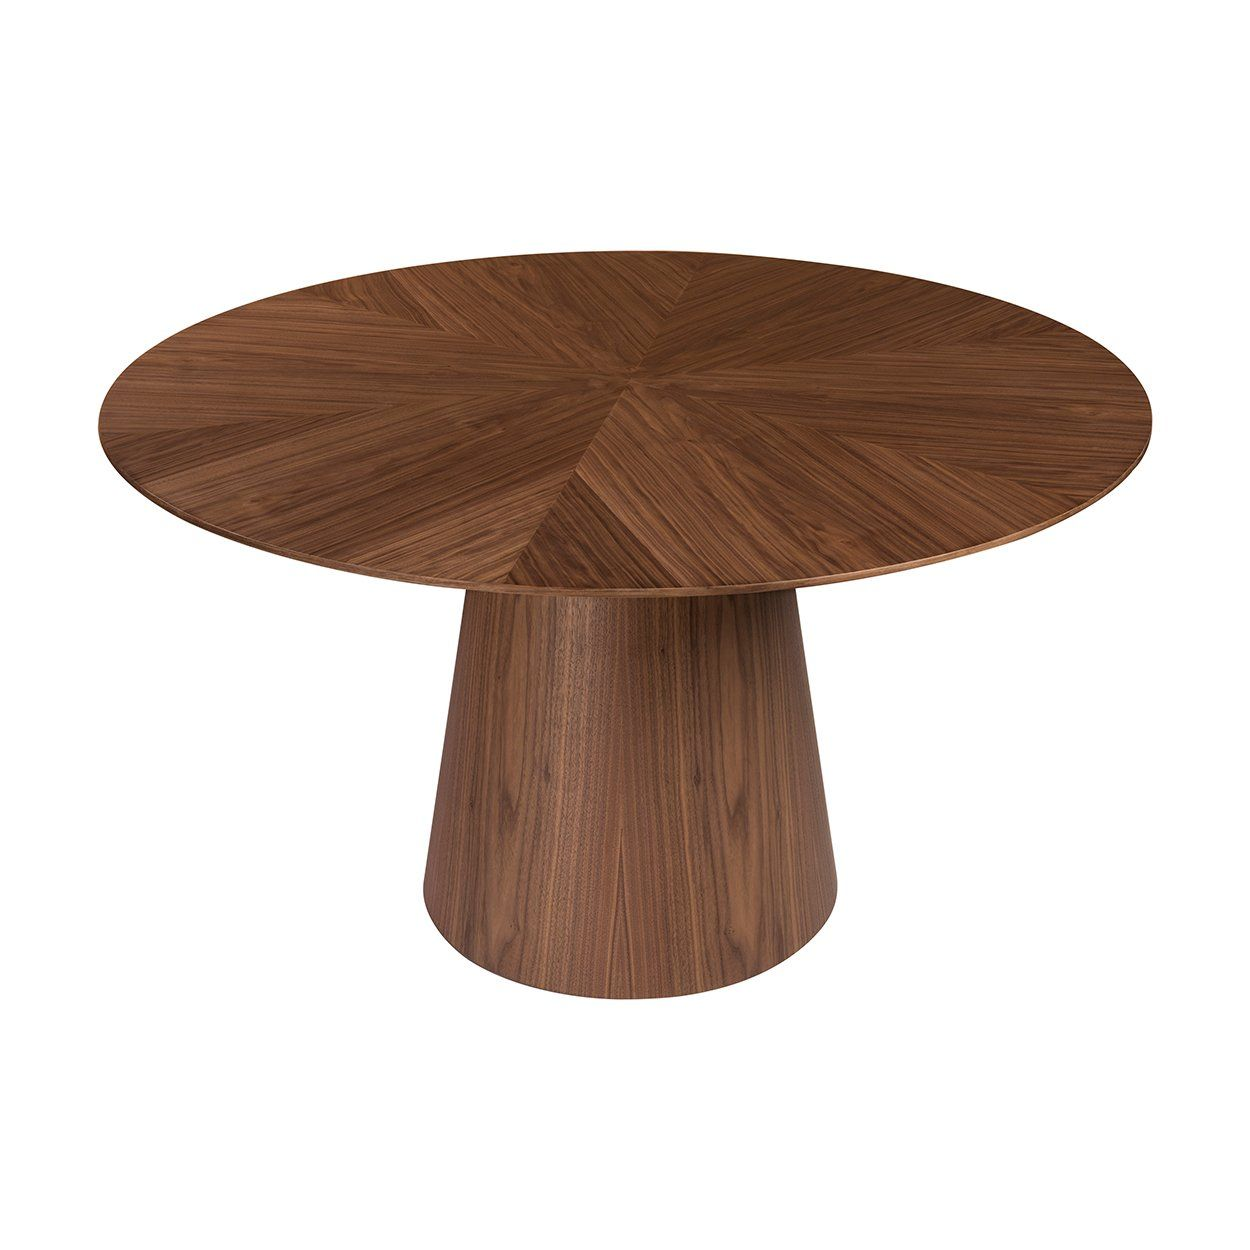 Deo Round Dining Table In 2021 Round Dining Table Round Dining Walnut Dining Table